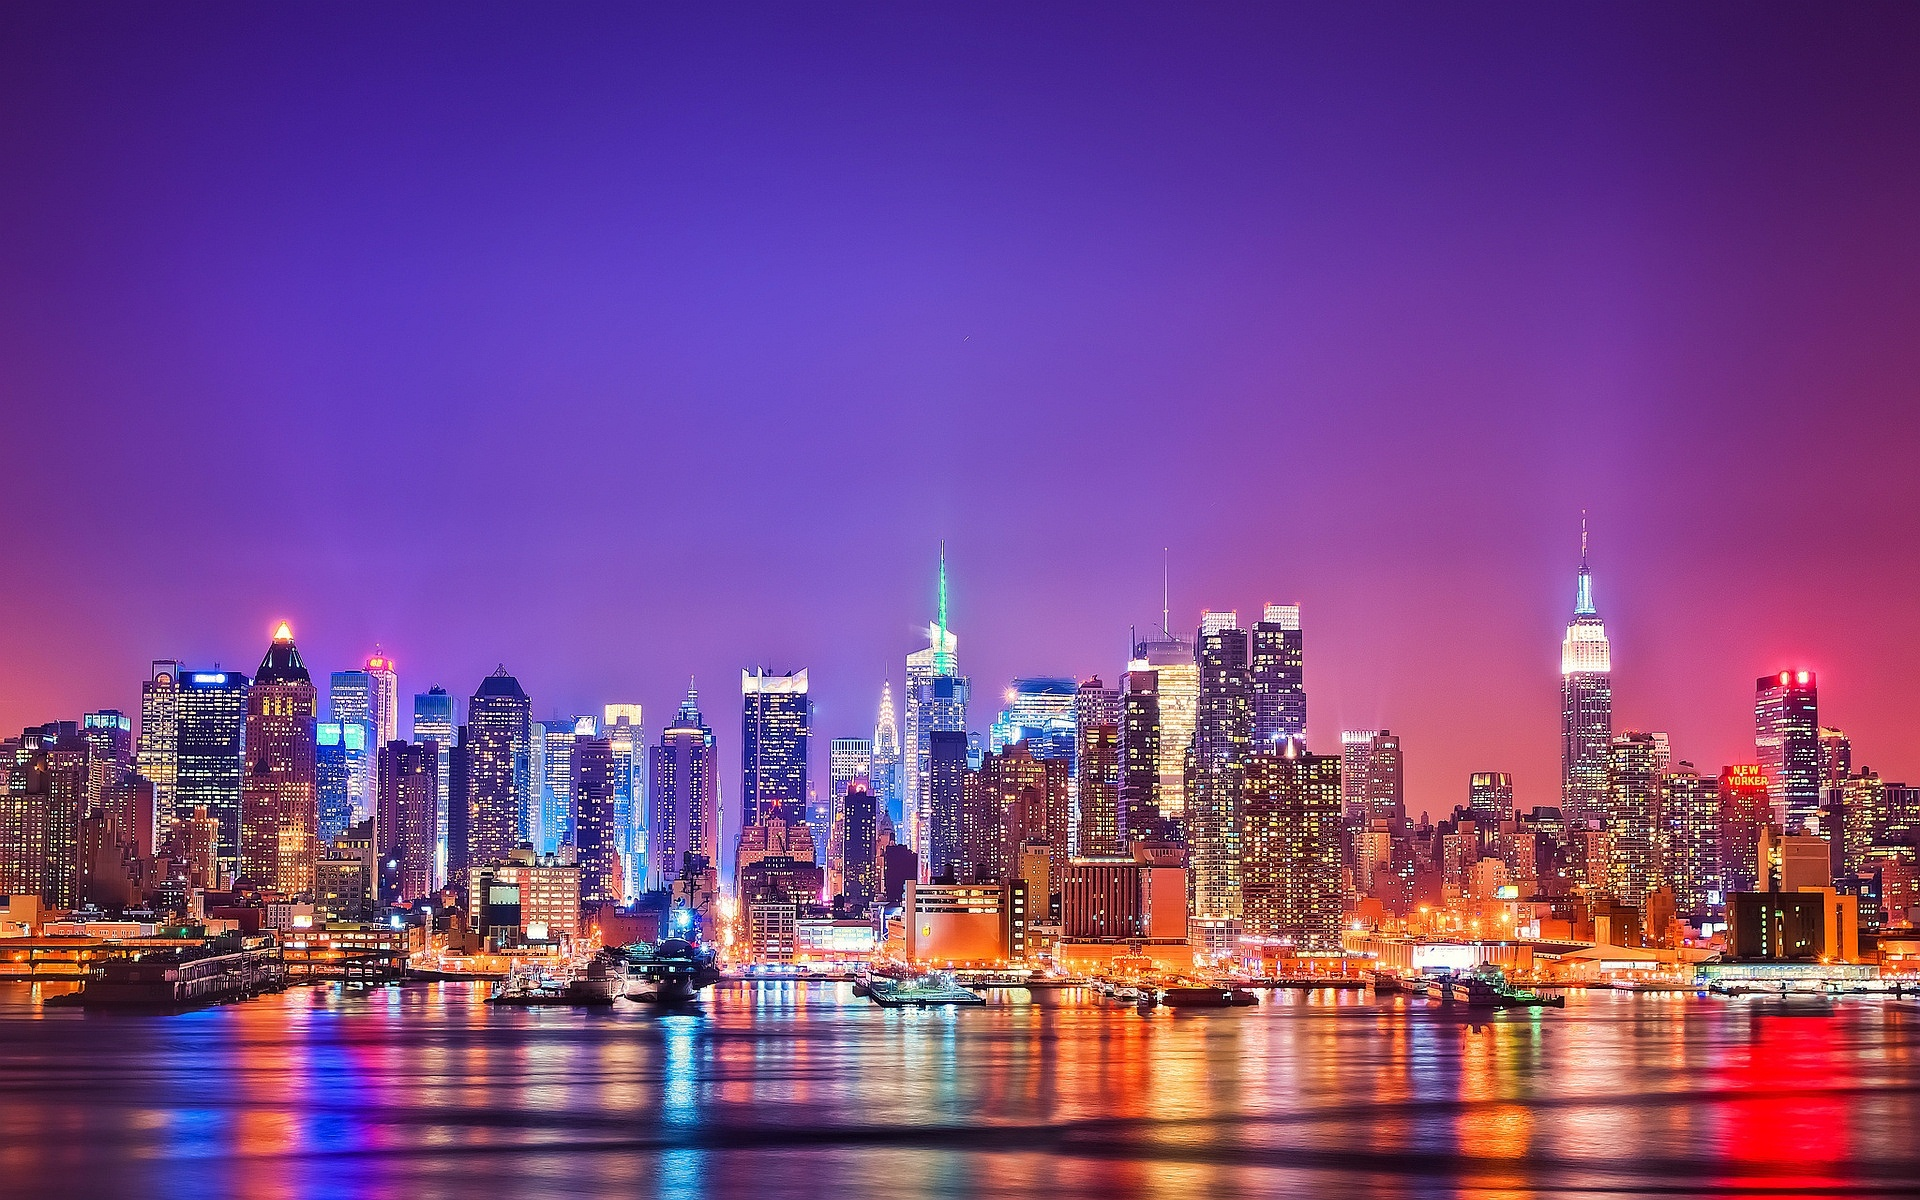 hd awesome new york city photo usa download images